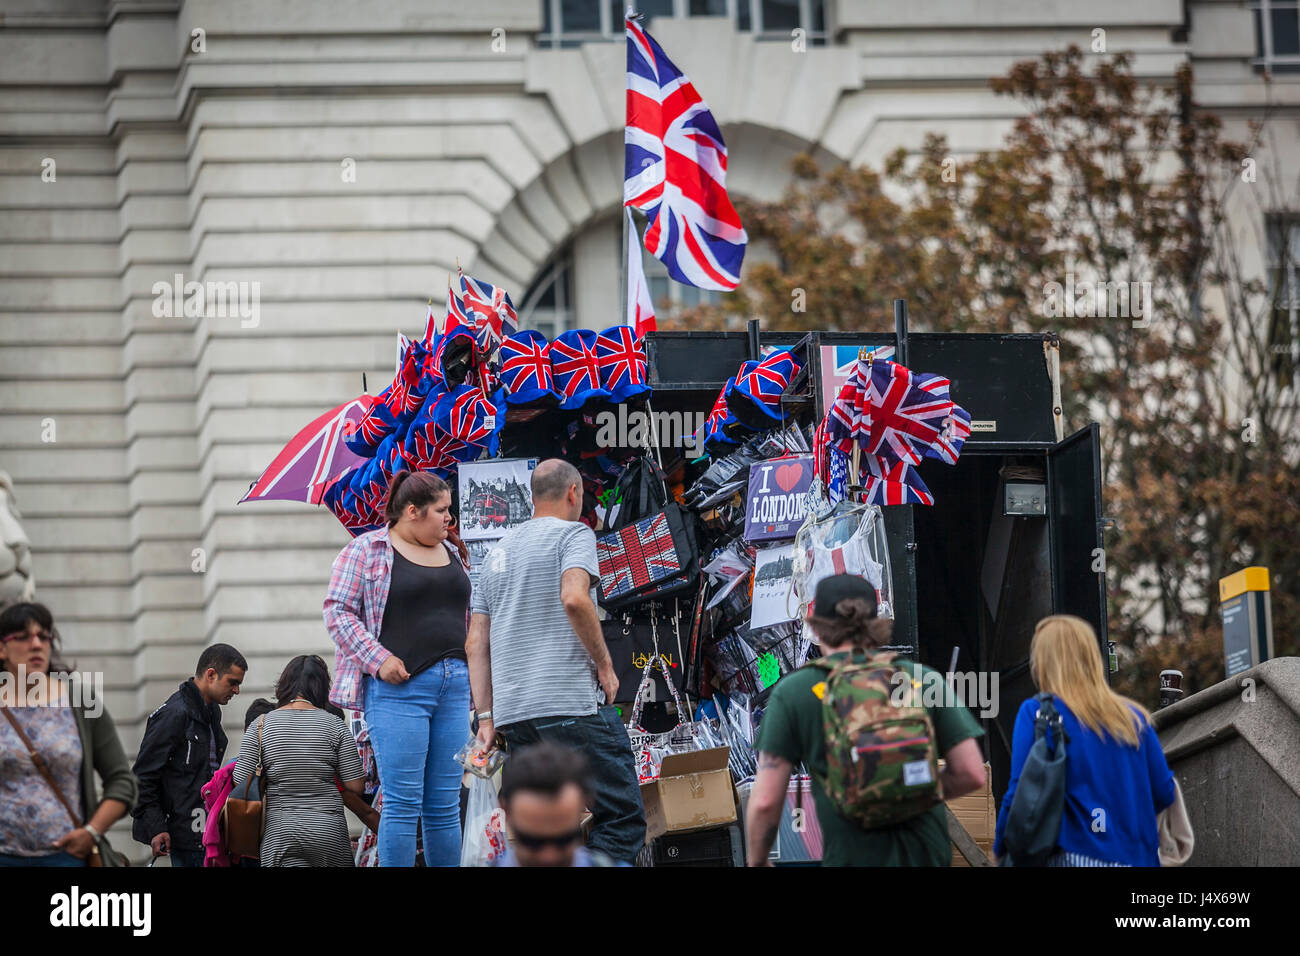 SOUVENIR SELLERS, LONDON, ENGLAND-19th AUG 2015:-Souvenirs are for sale to tourists and locals alike, patriotism - Stock Image